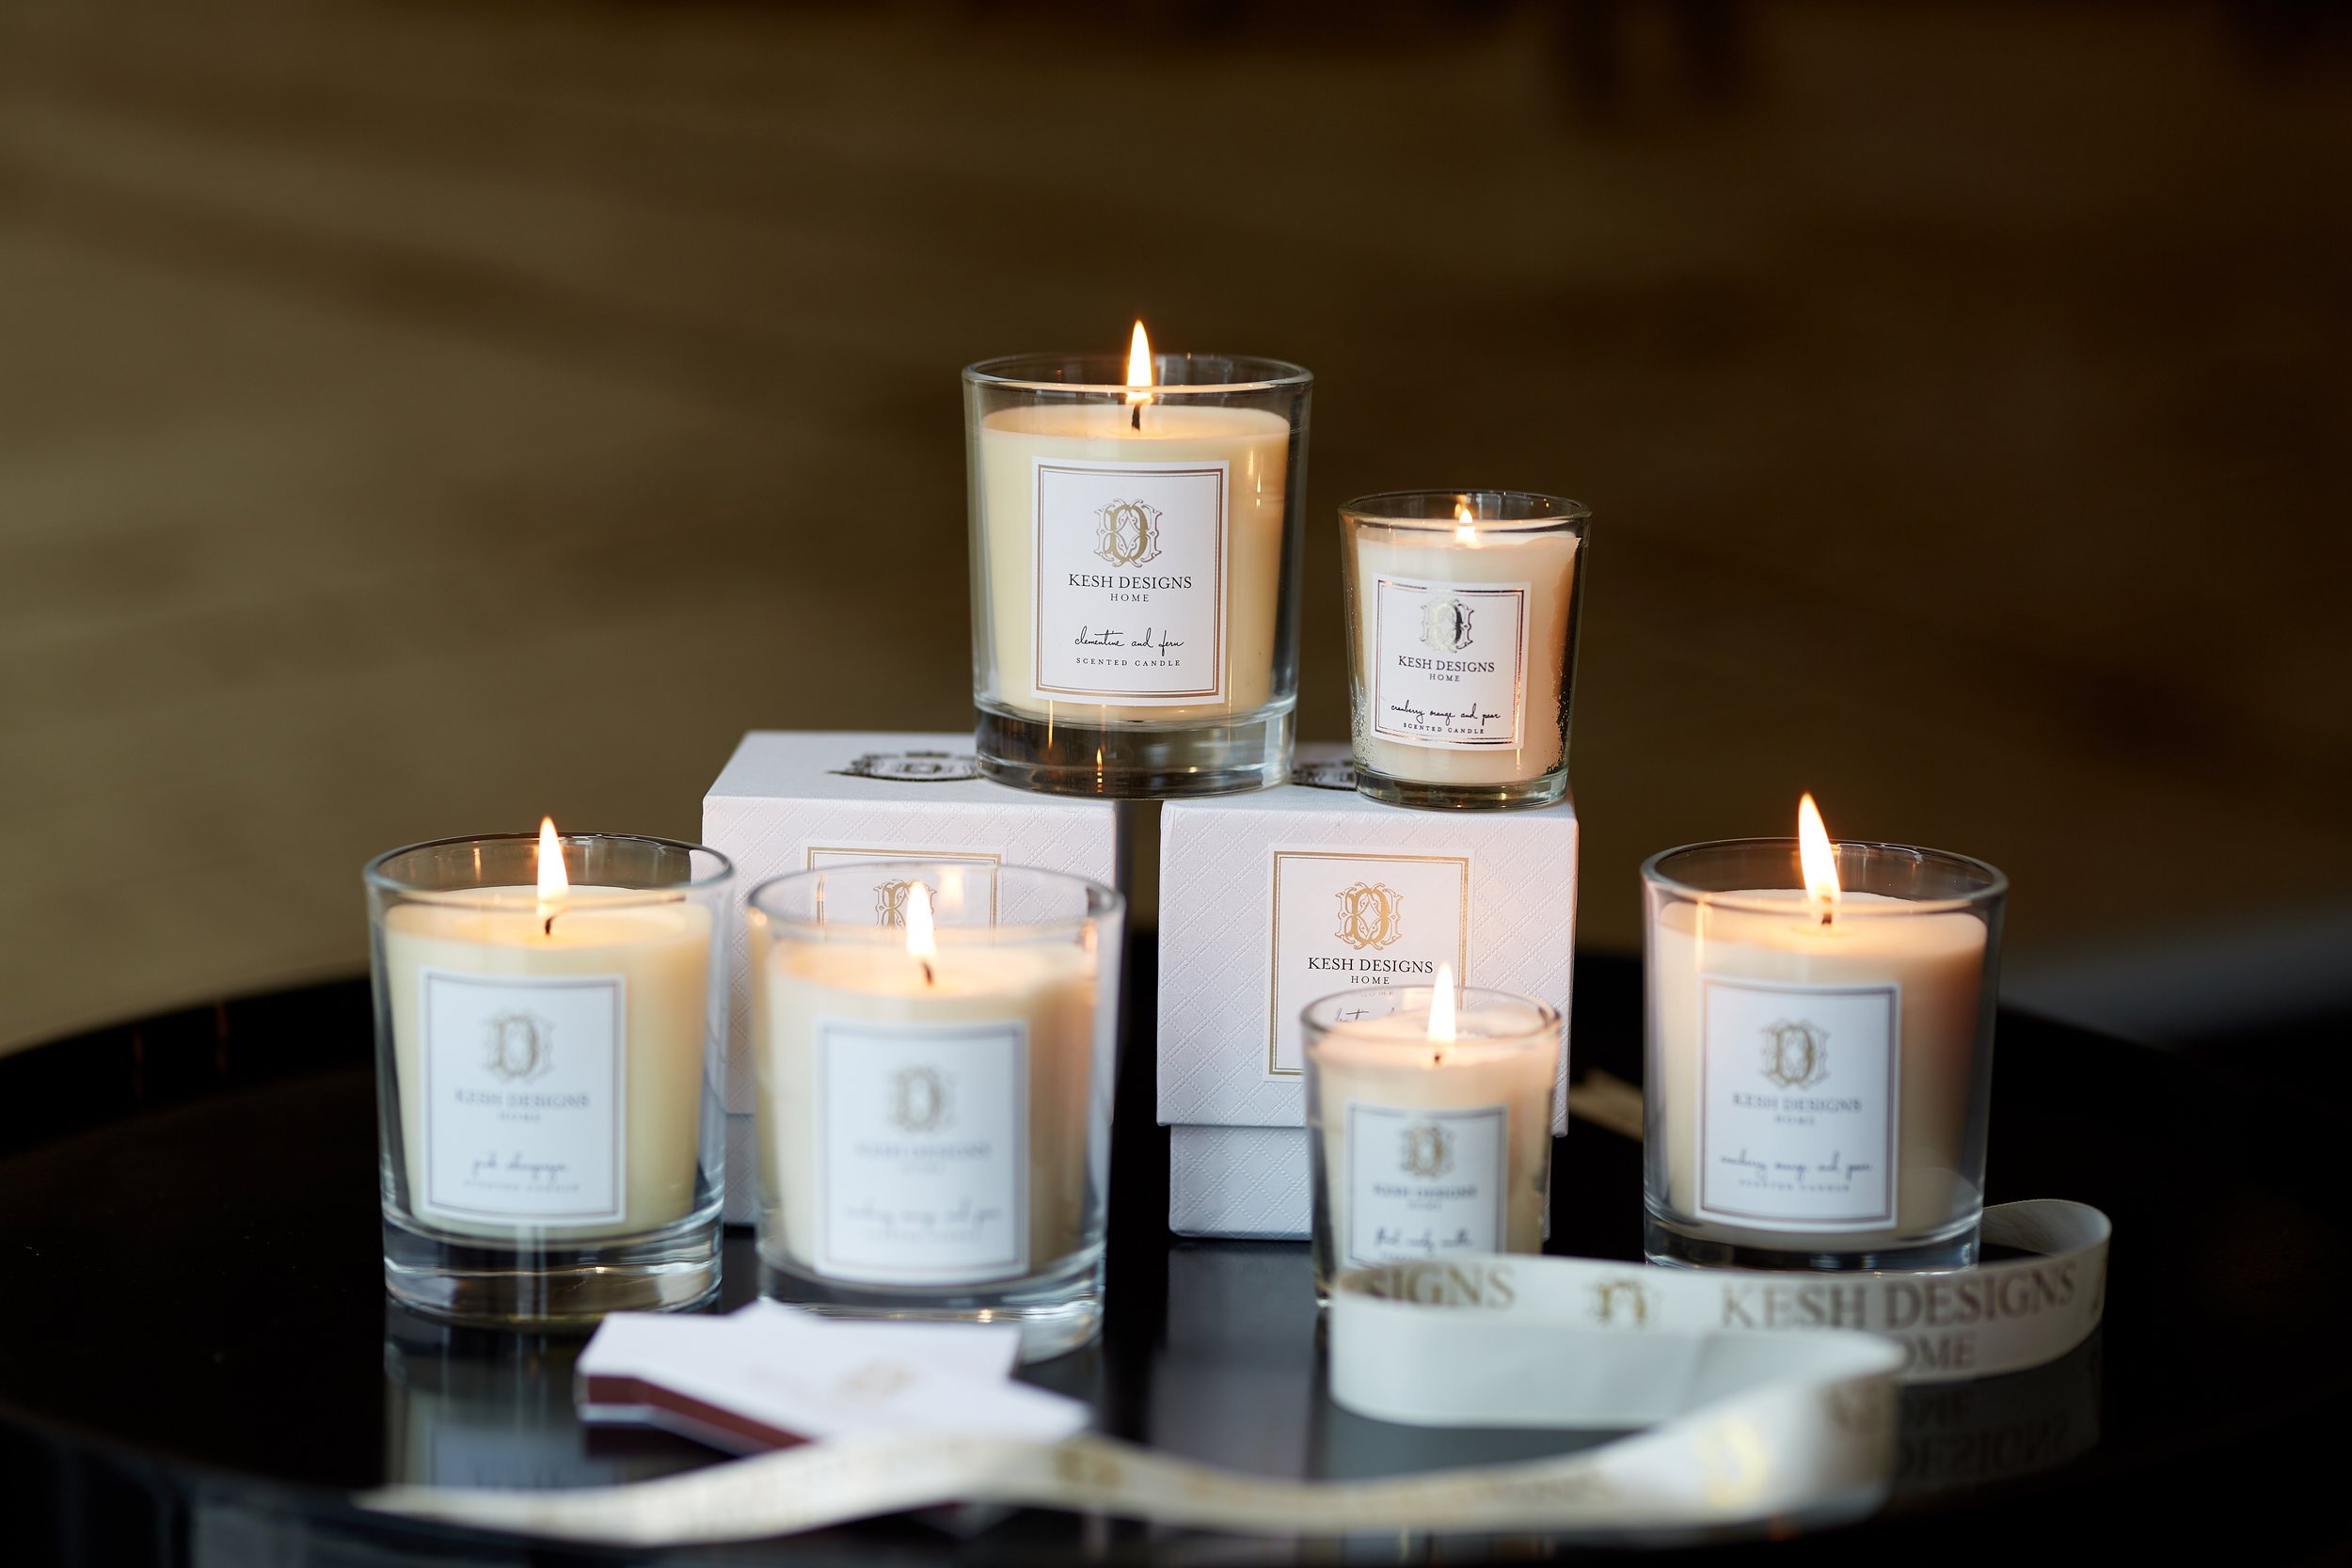 luxury-scented-candles-kesh-design-home.JPG